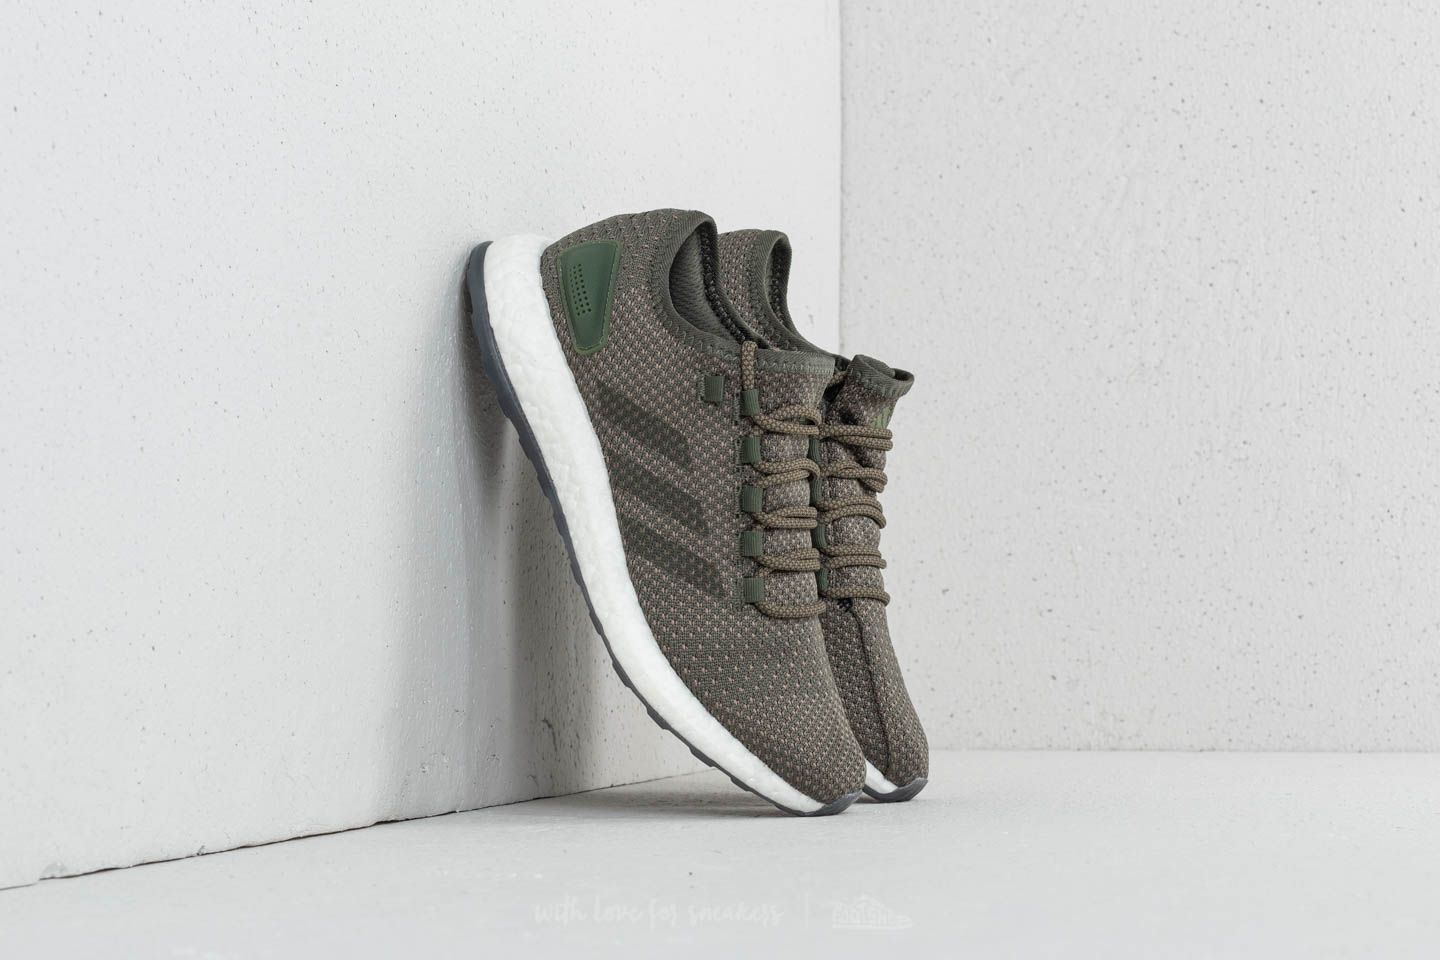 290959316b5b adidas Pureboost Clima Base Green  Night Cargo  Trace Cargo at a great  price 81